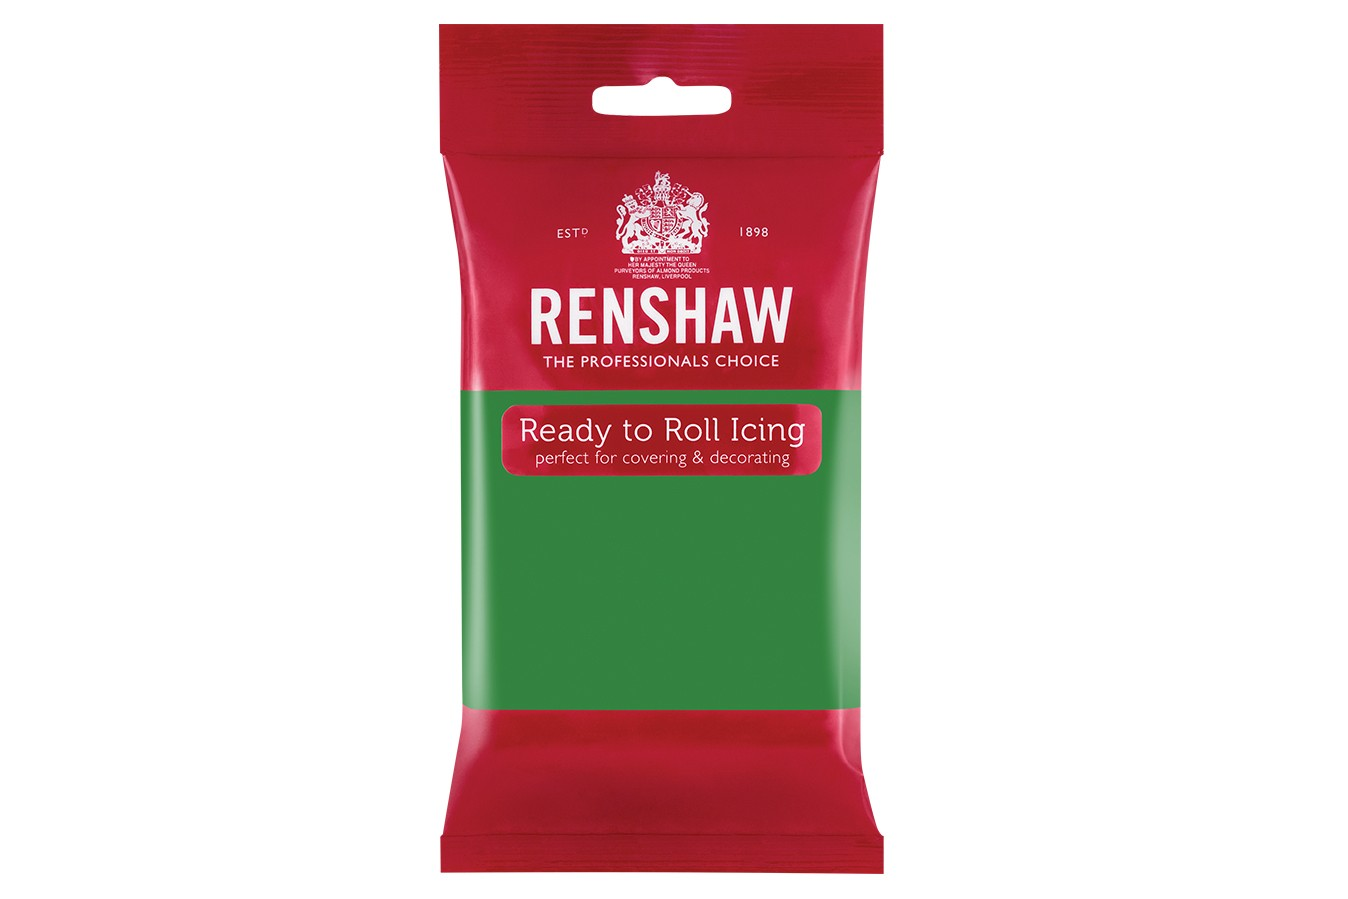 Renshaw Rtr Sugar Paste 500g Lincoln Green Doric Cake